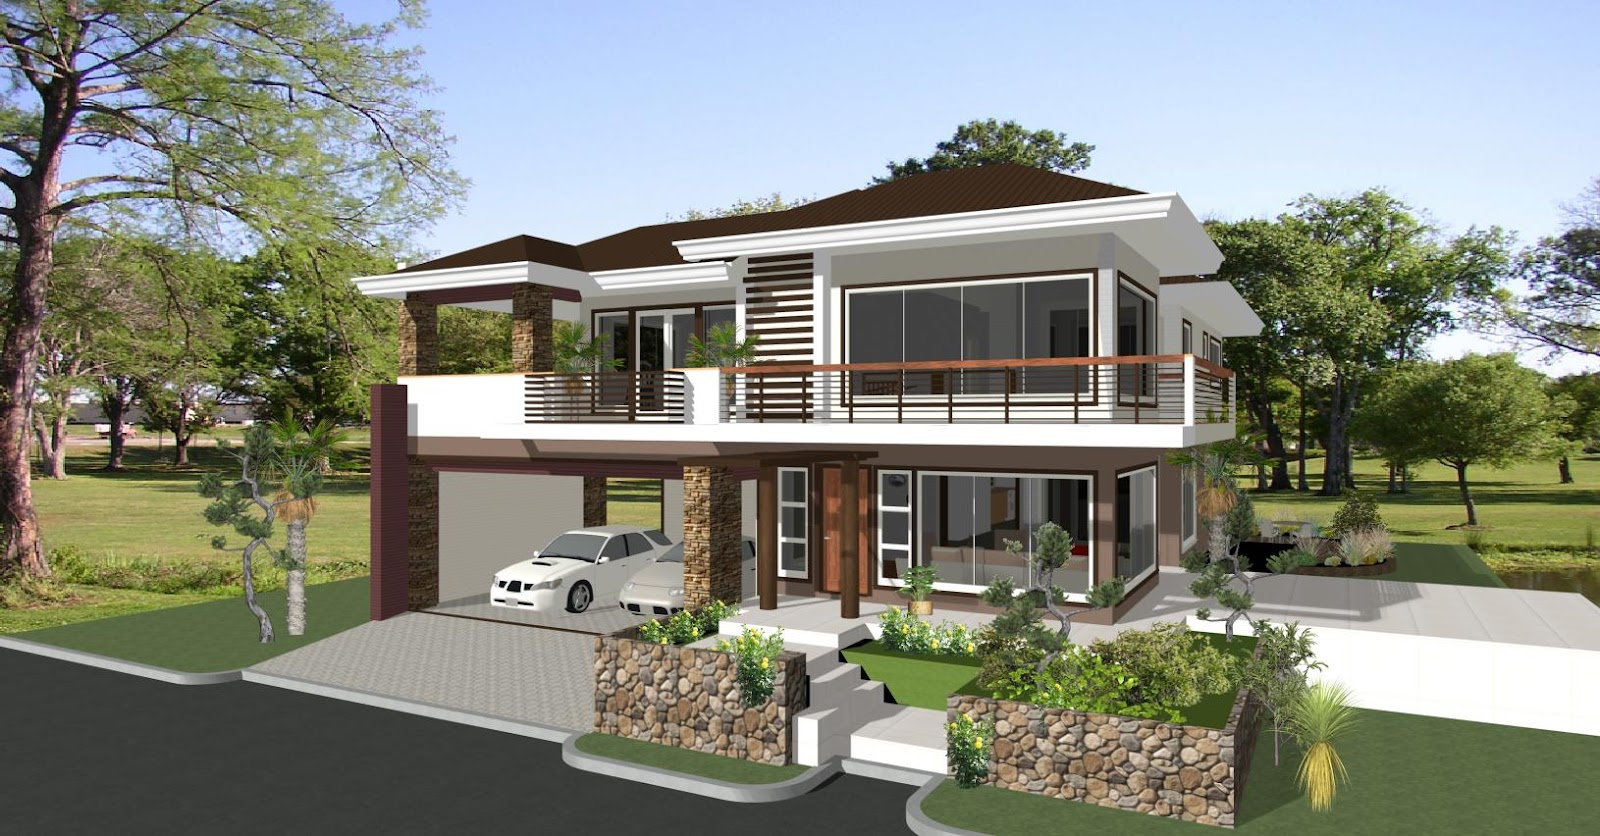 dream home designs erecre group realty design and construction - Design Dream Homes